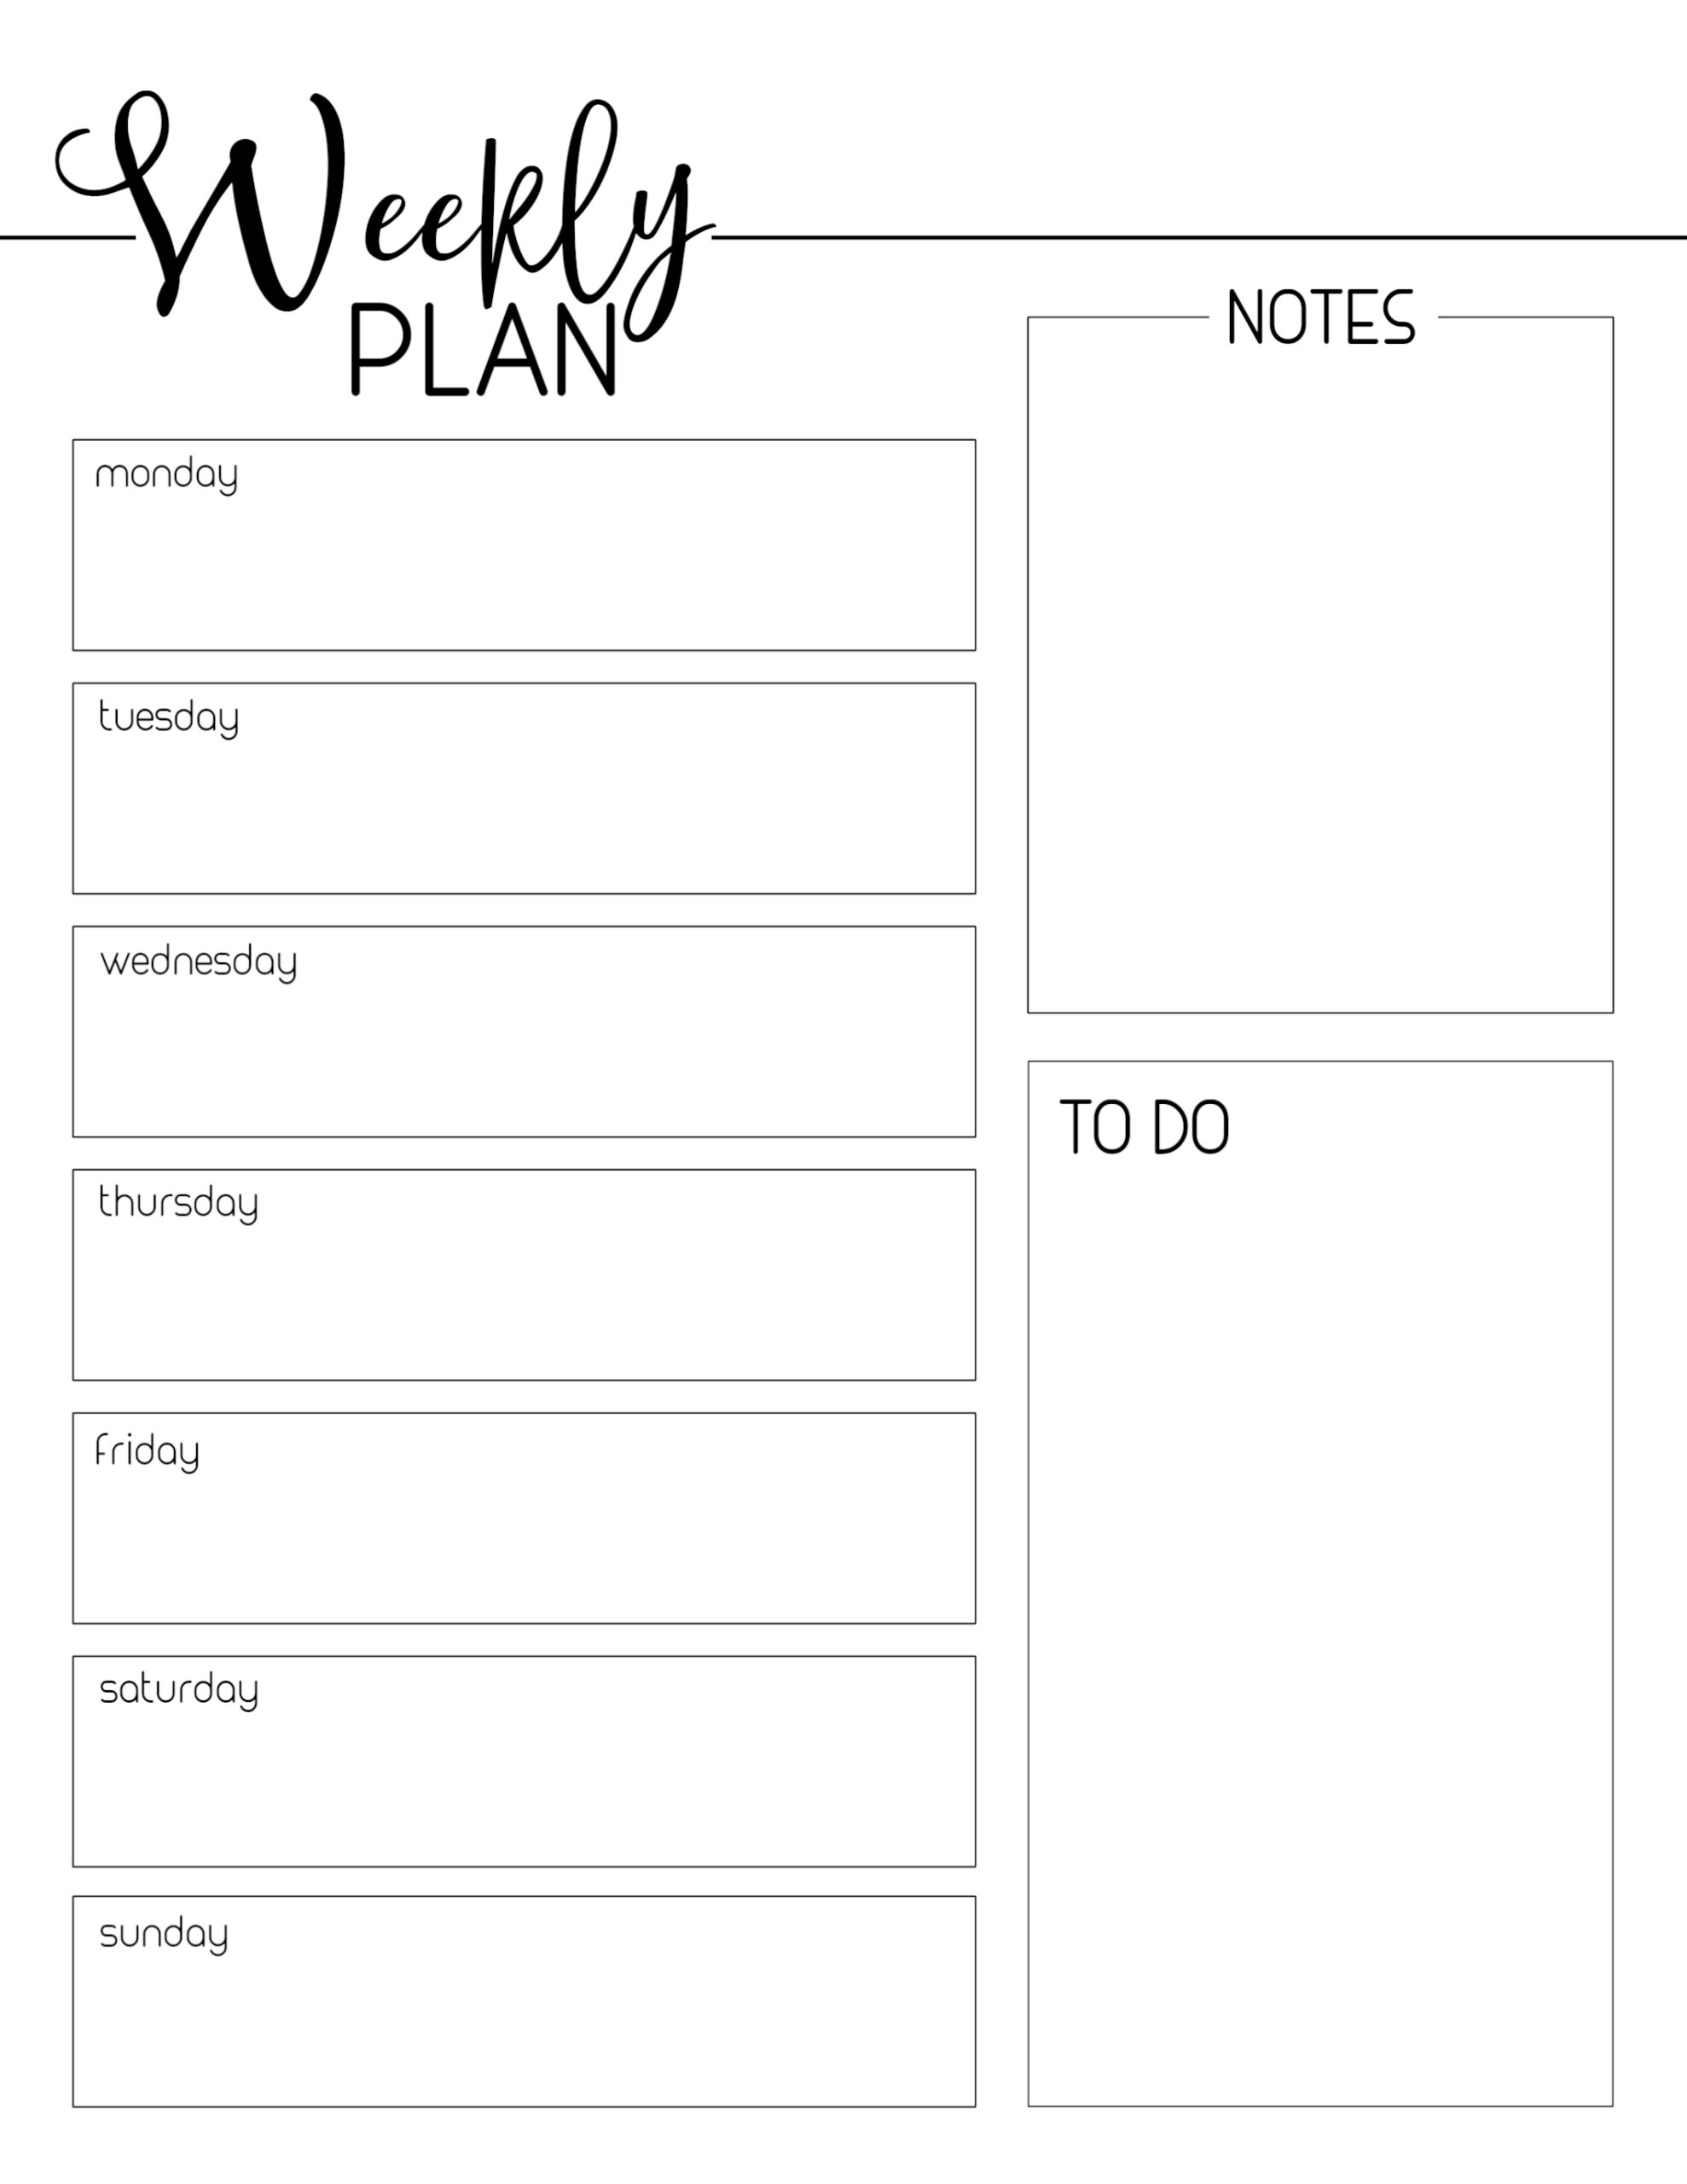 Weekly Planner Template Free Printable | Paper Trail Design